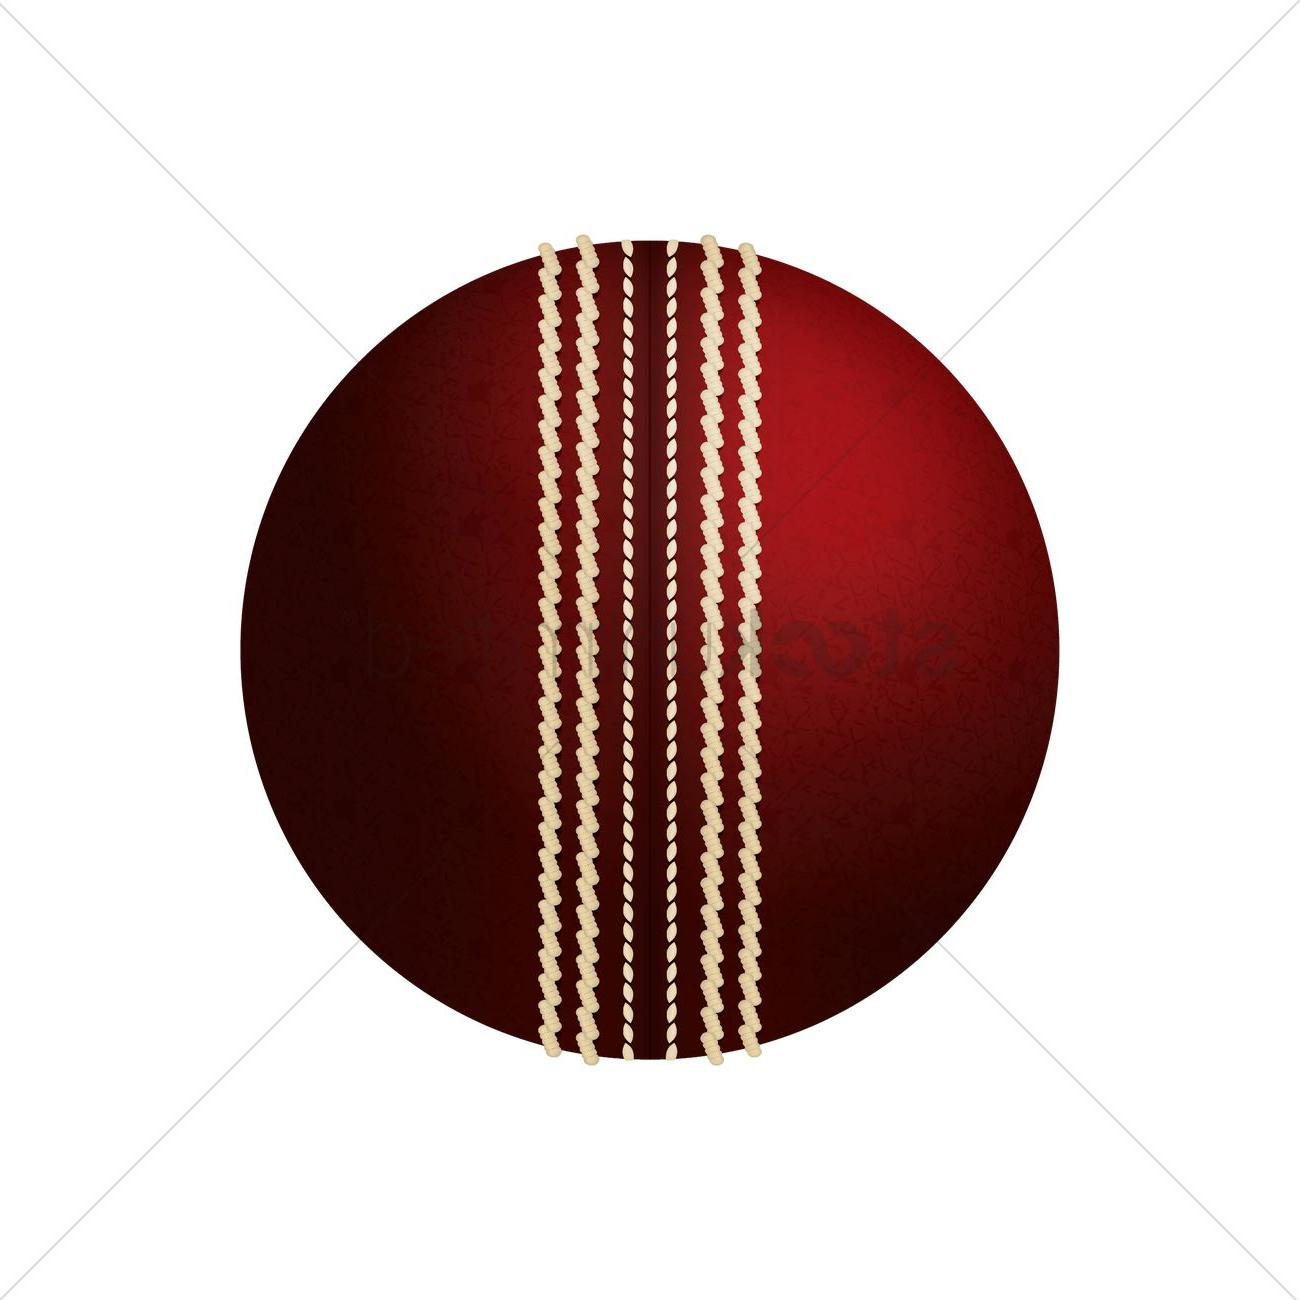 Cricket ball logo clipart clip free stock Best Free Cricket Ball Logo Vector Images » Free Vector Art, Images ... clip free stock